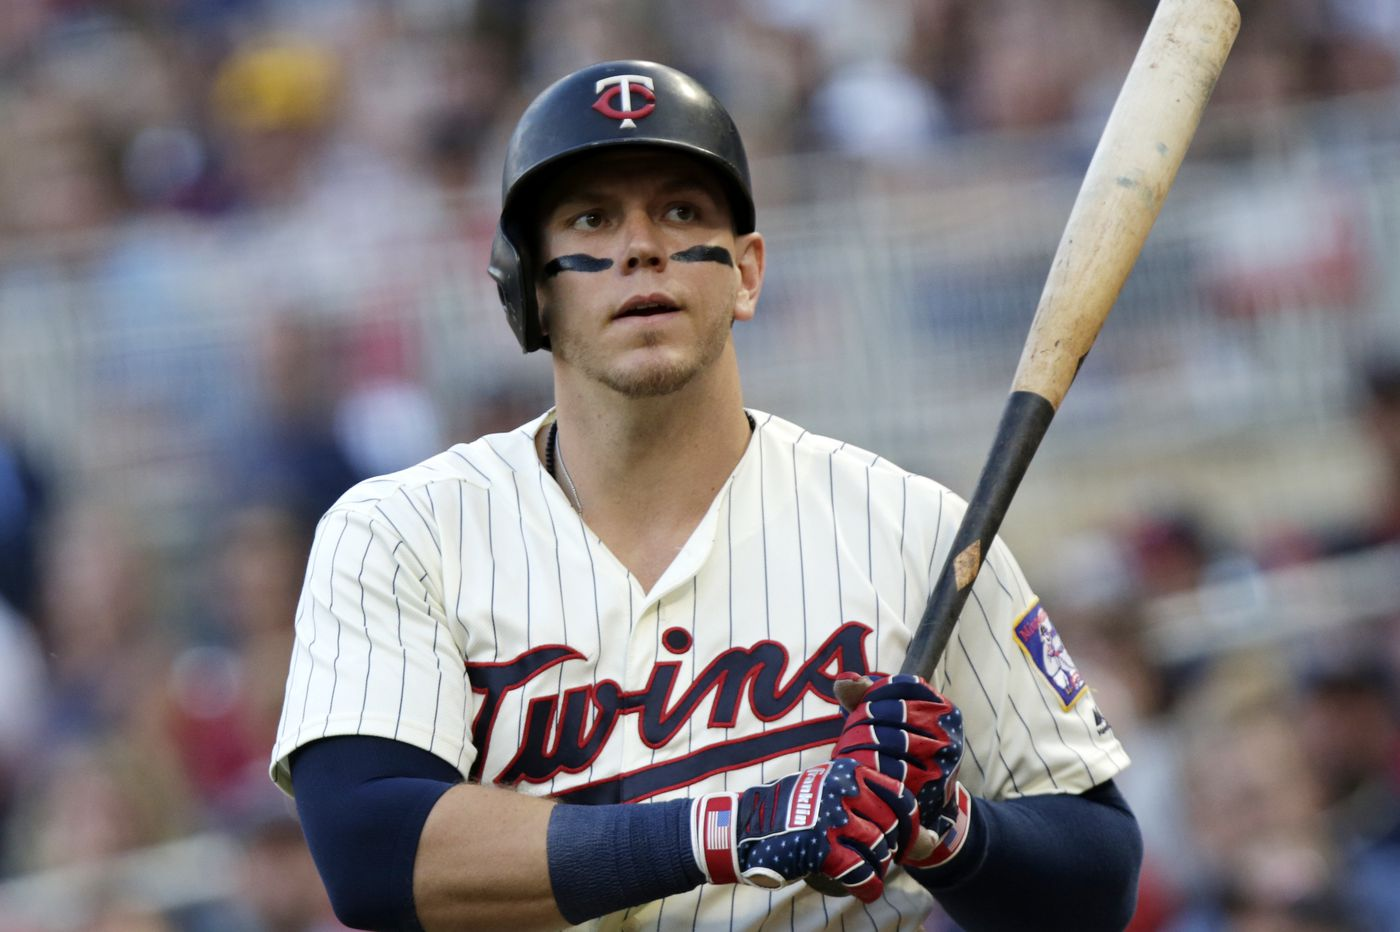 Phillies sign veteran slugger Logan Morrison to a minor-league contract